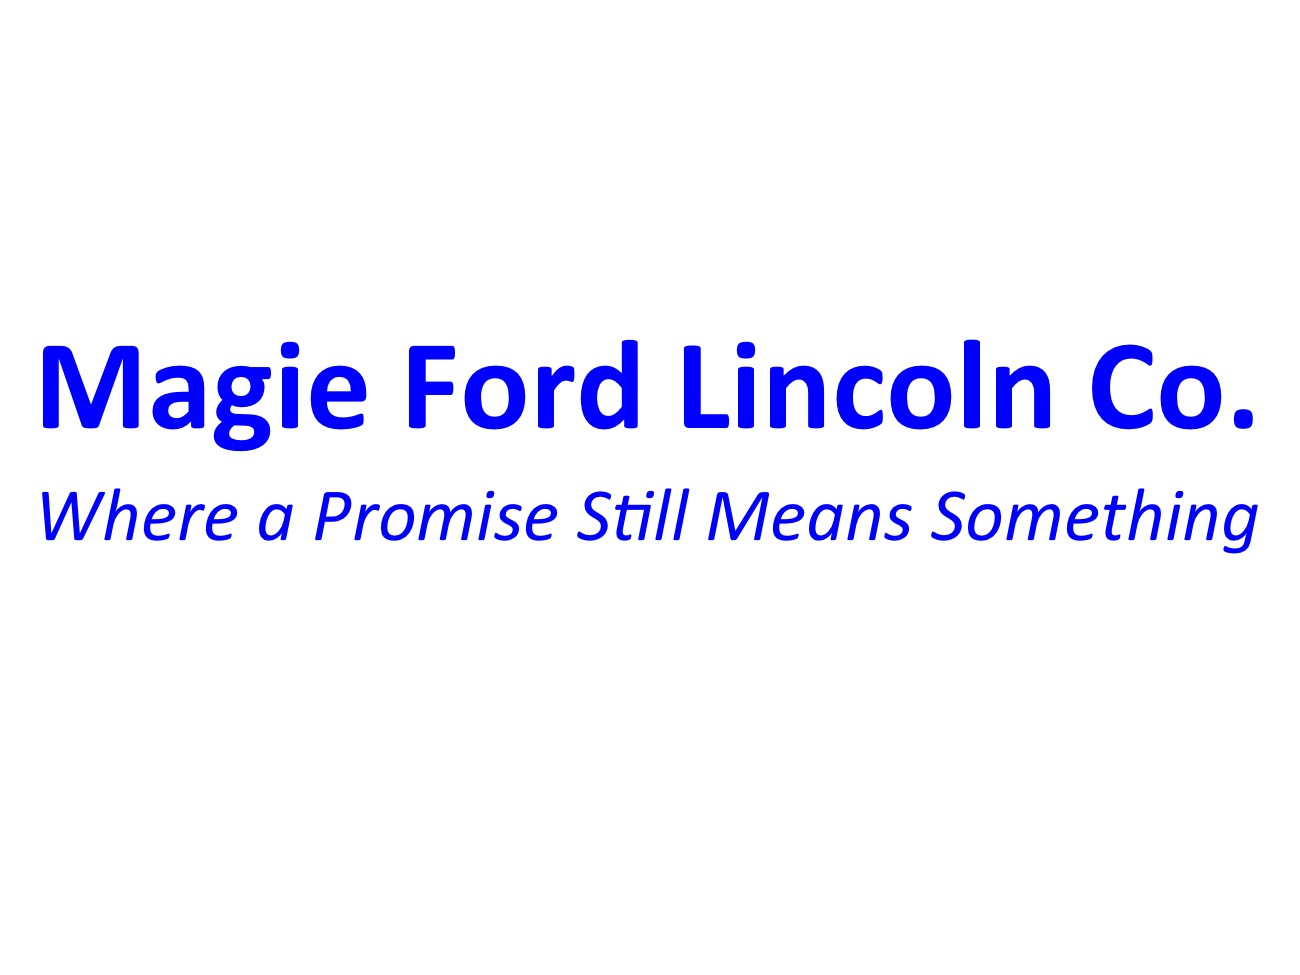 Magie Ford Lincoln Co.